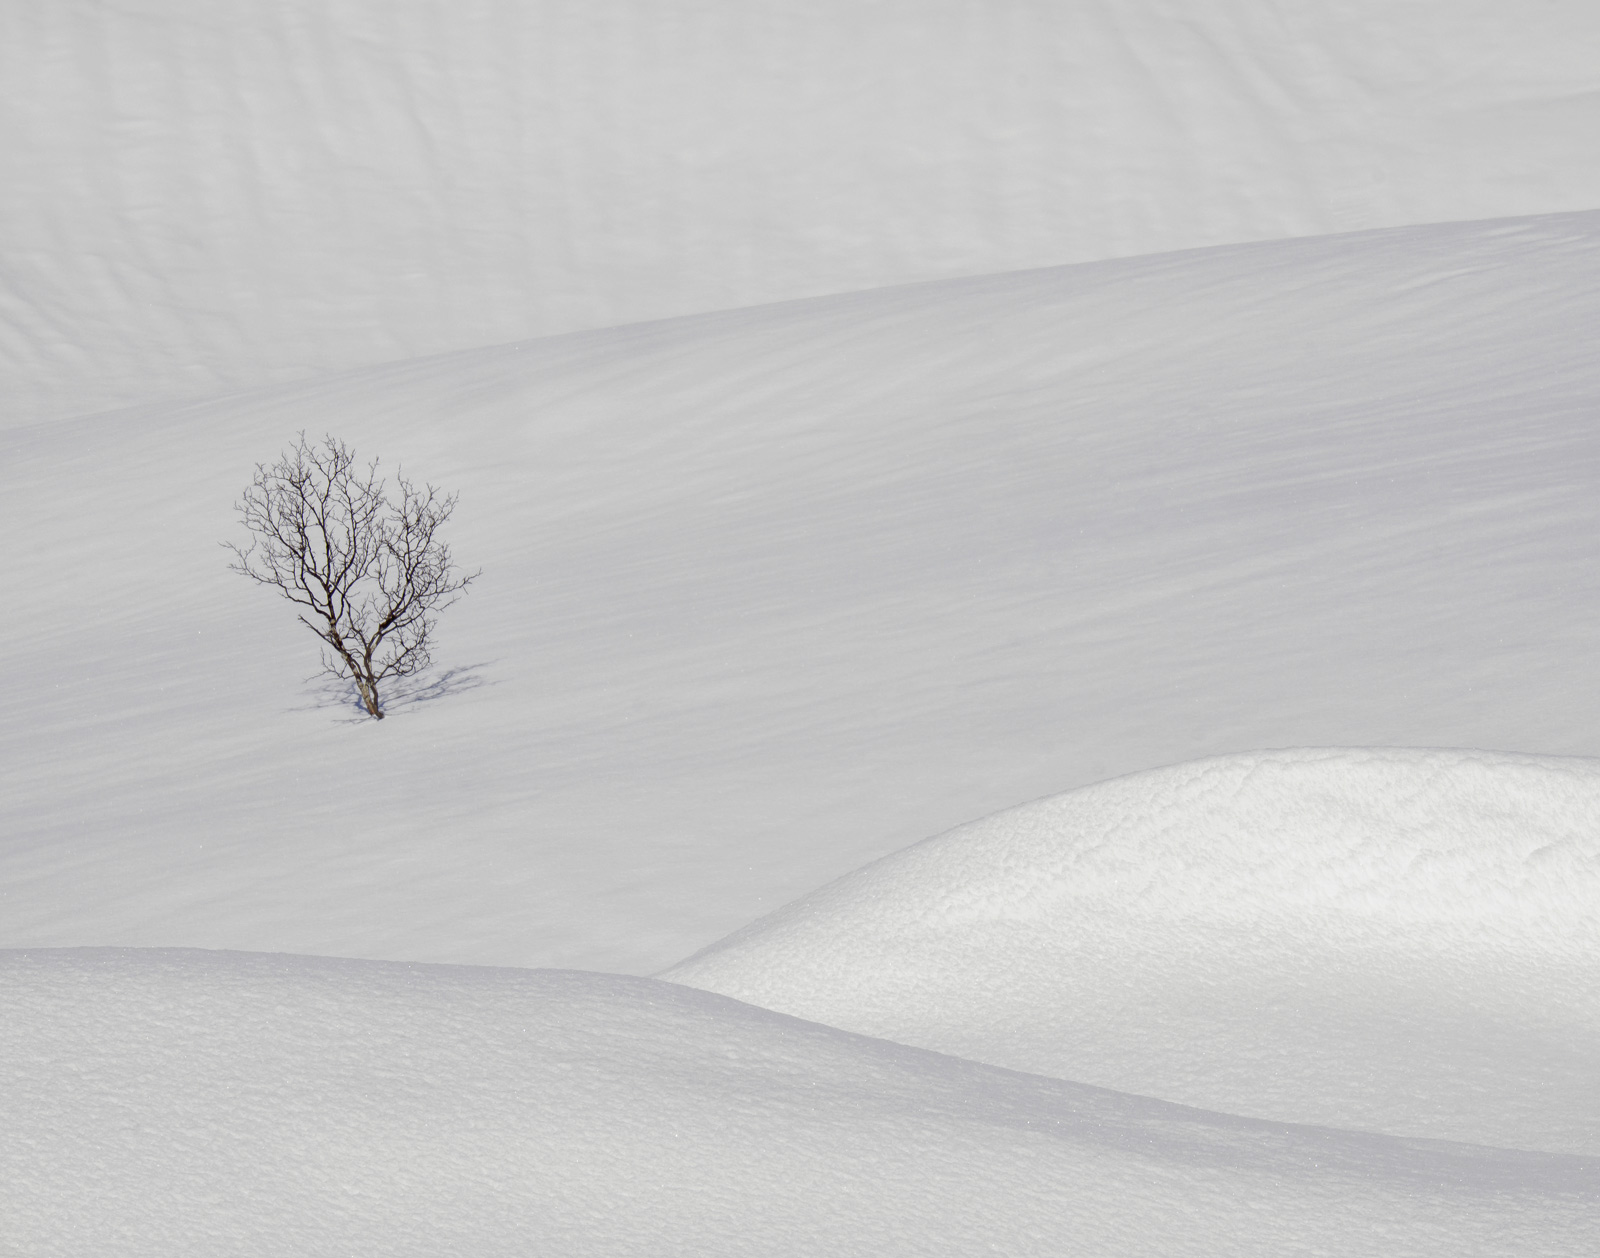 Another of these mesmerisingly beautiful snow field shots featuring a birch tree submerged in 4 to 5 metres of snow. Despite...